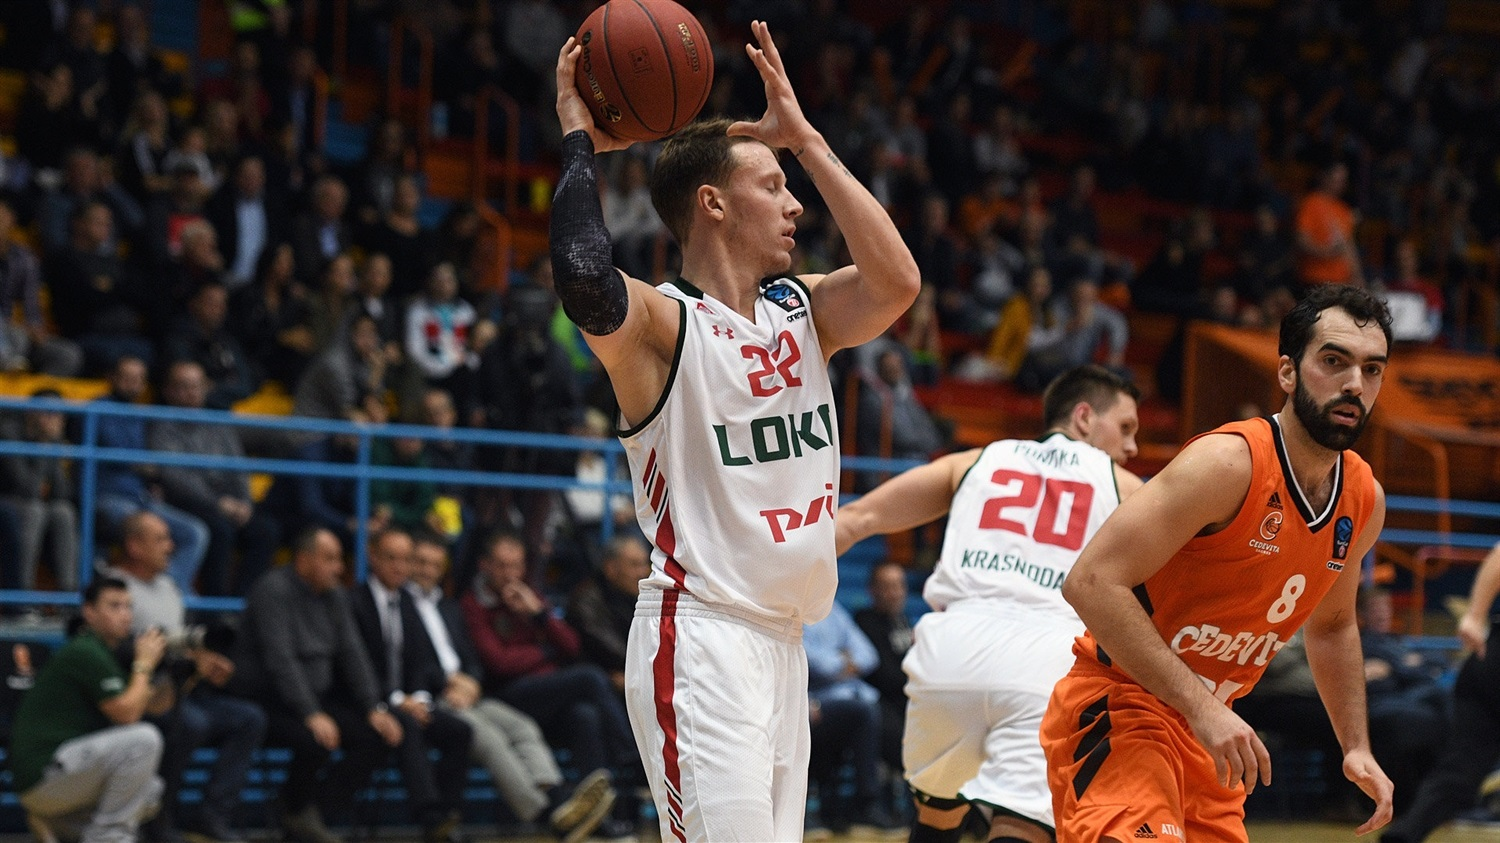 Dmitry Kulagin - Lokomotiv Kuban Krasnodar (photo Cedevita) - EC18